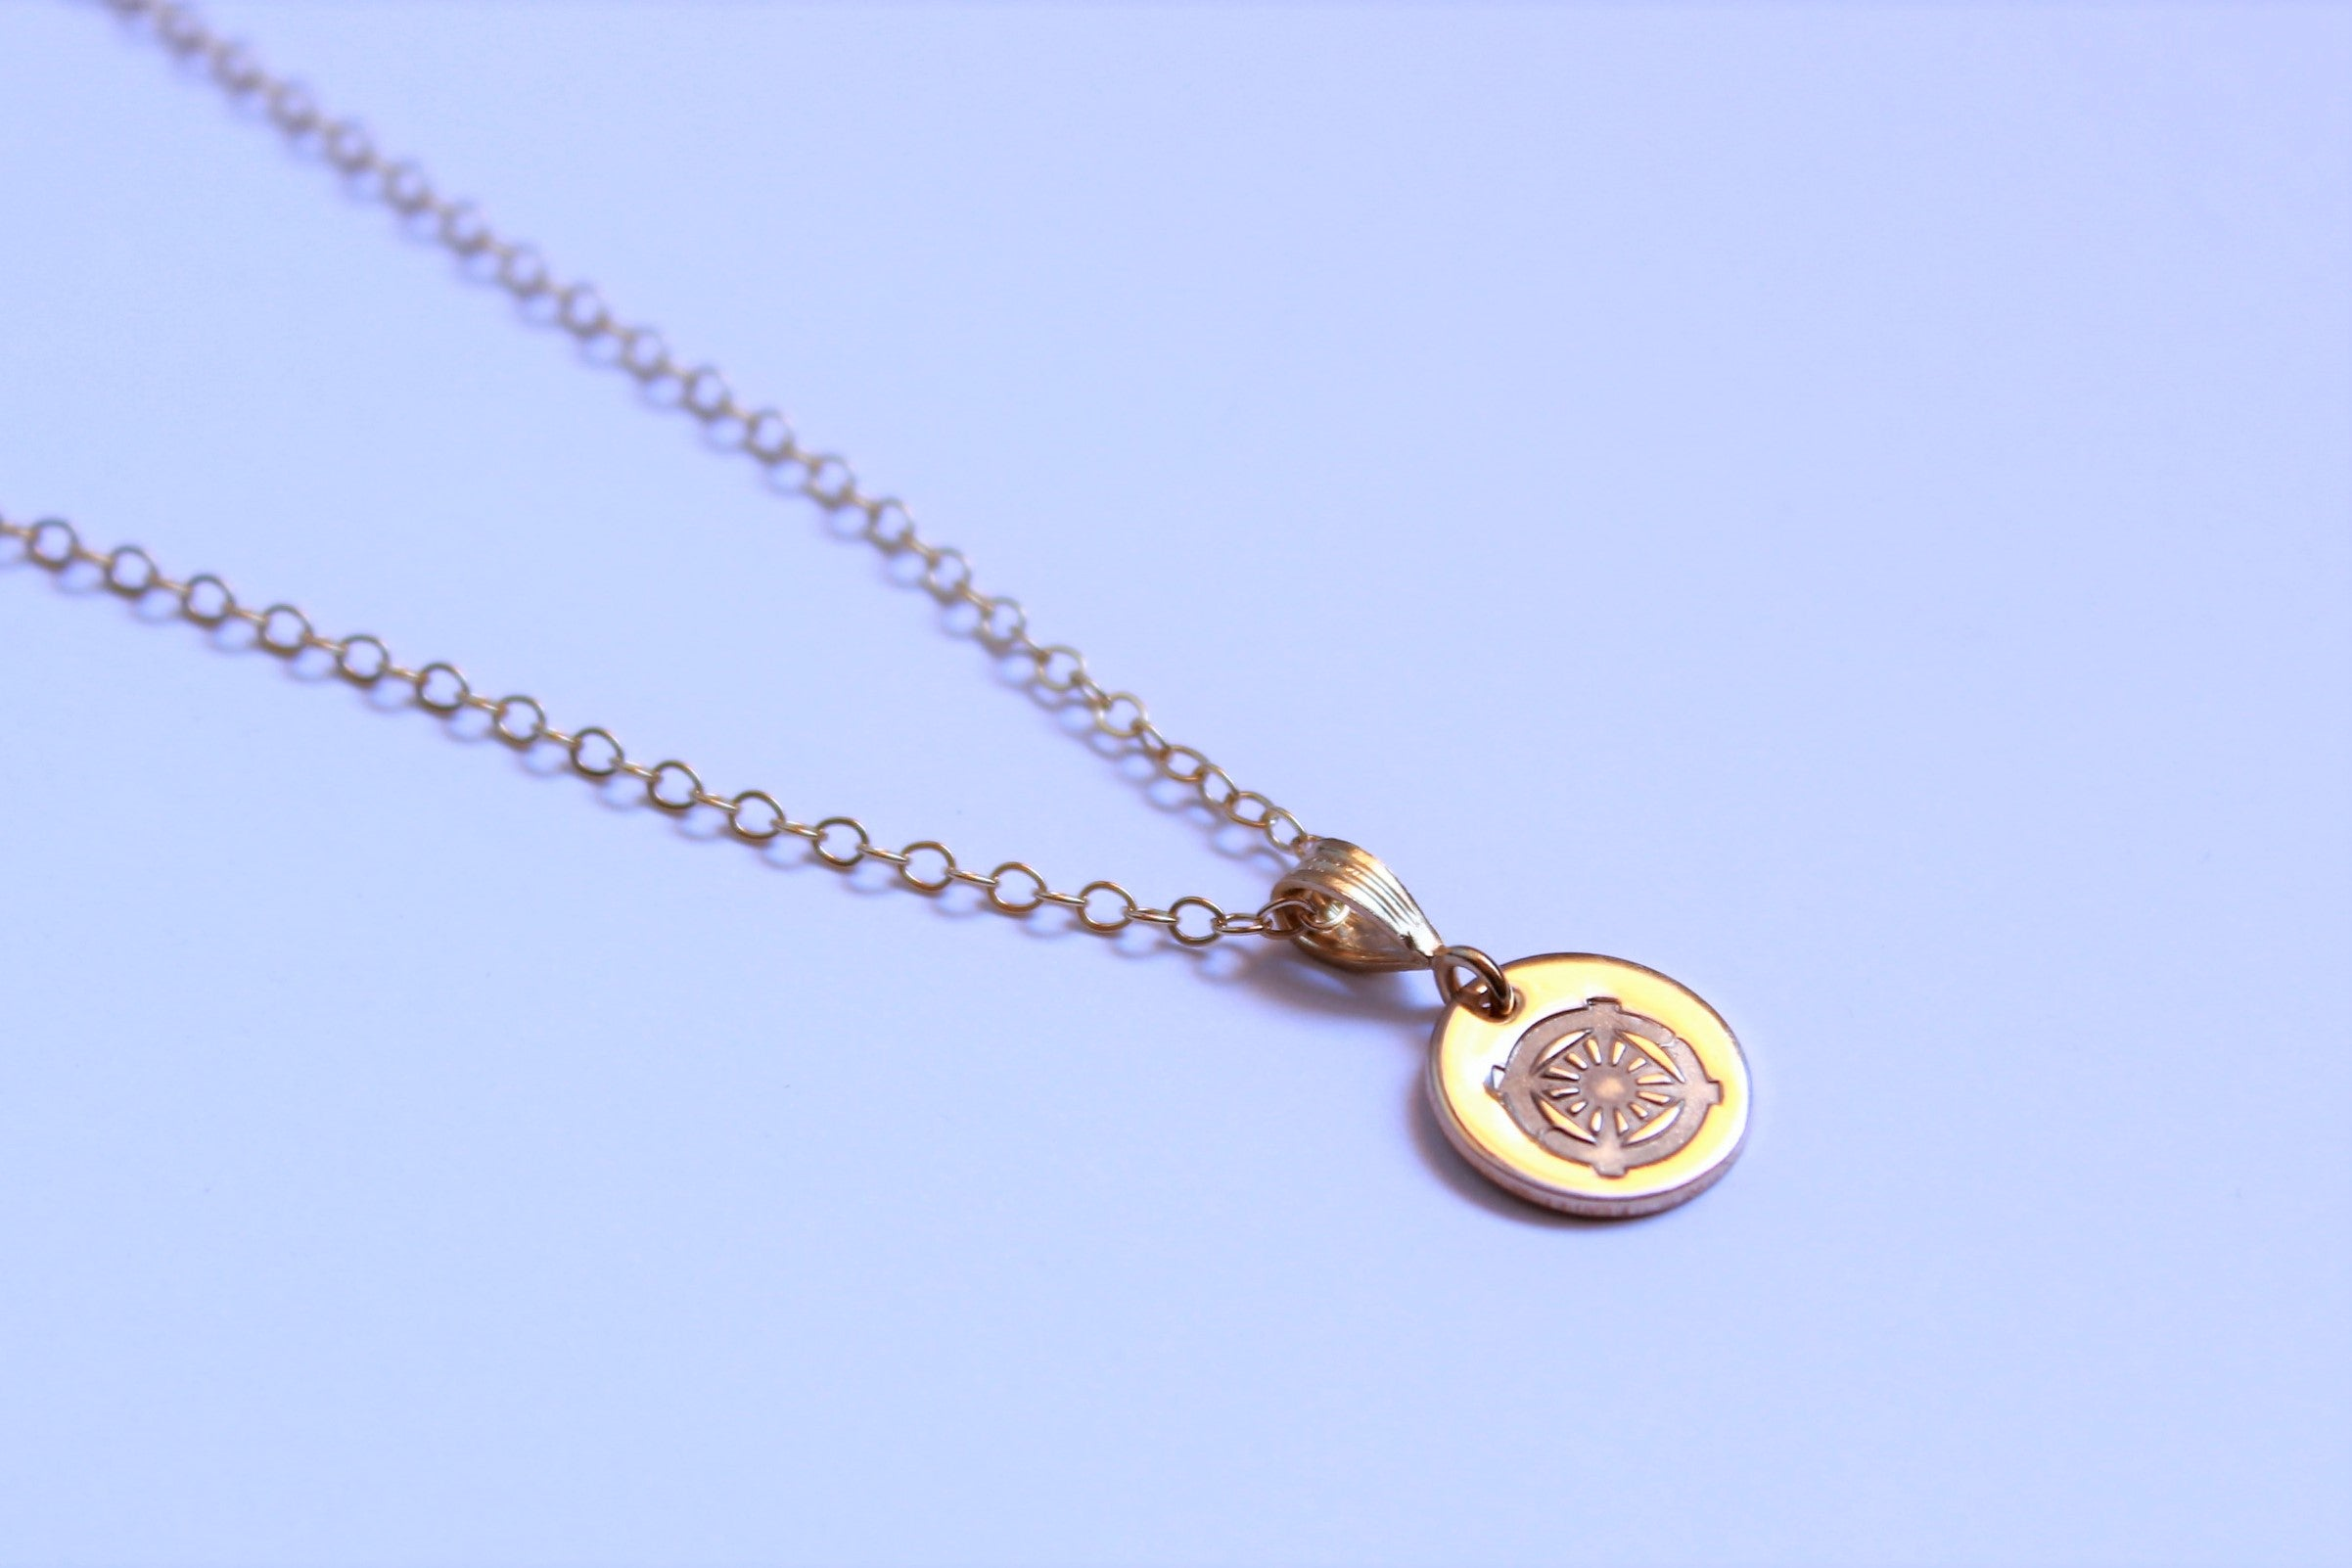 Unification Church Symbol Necklace